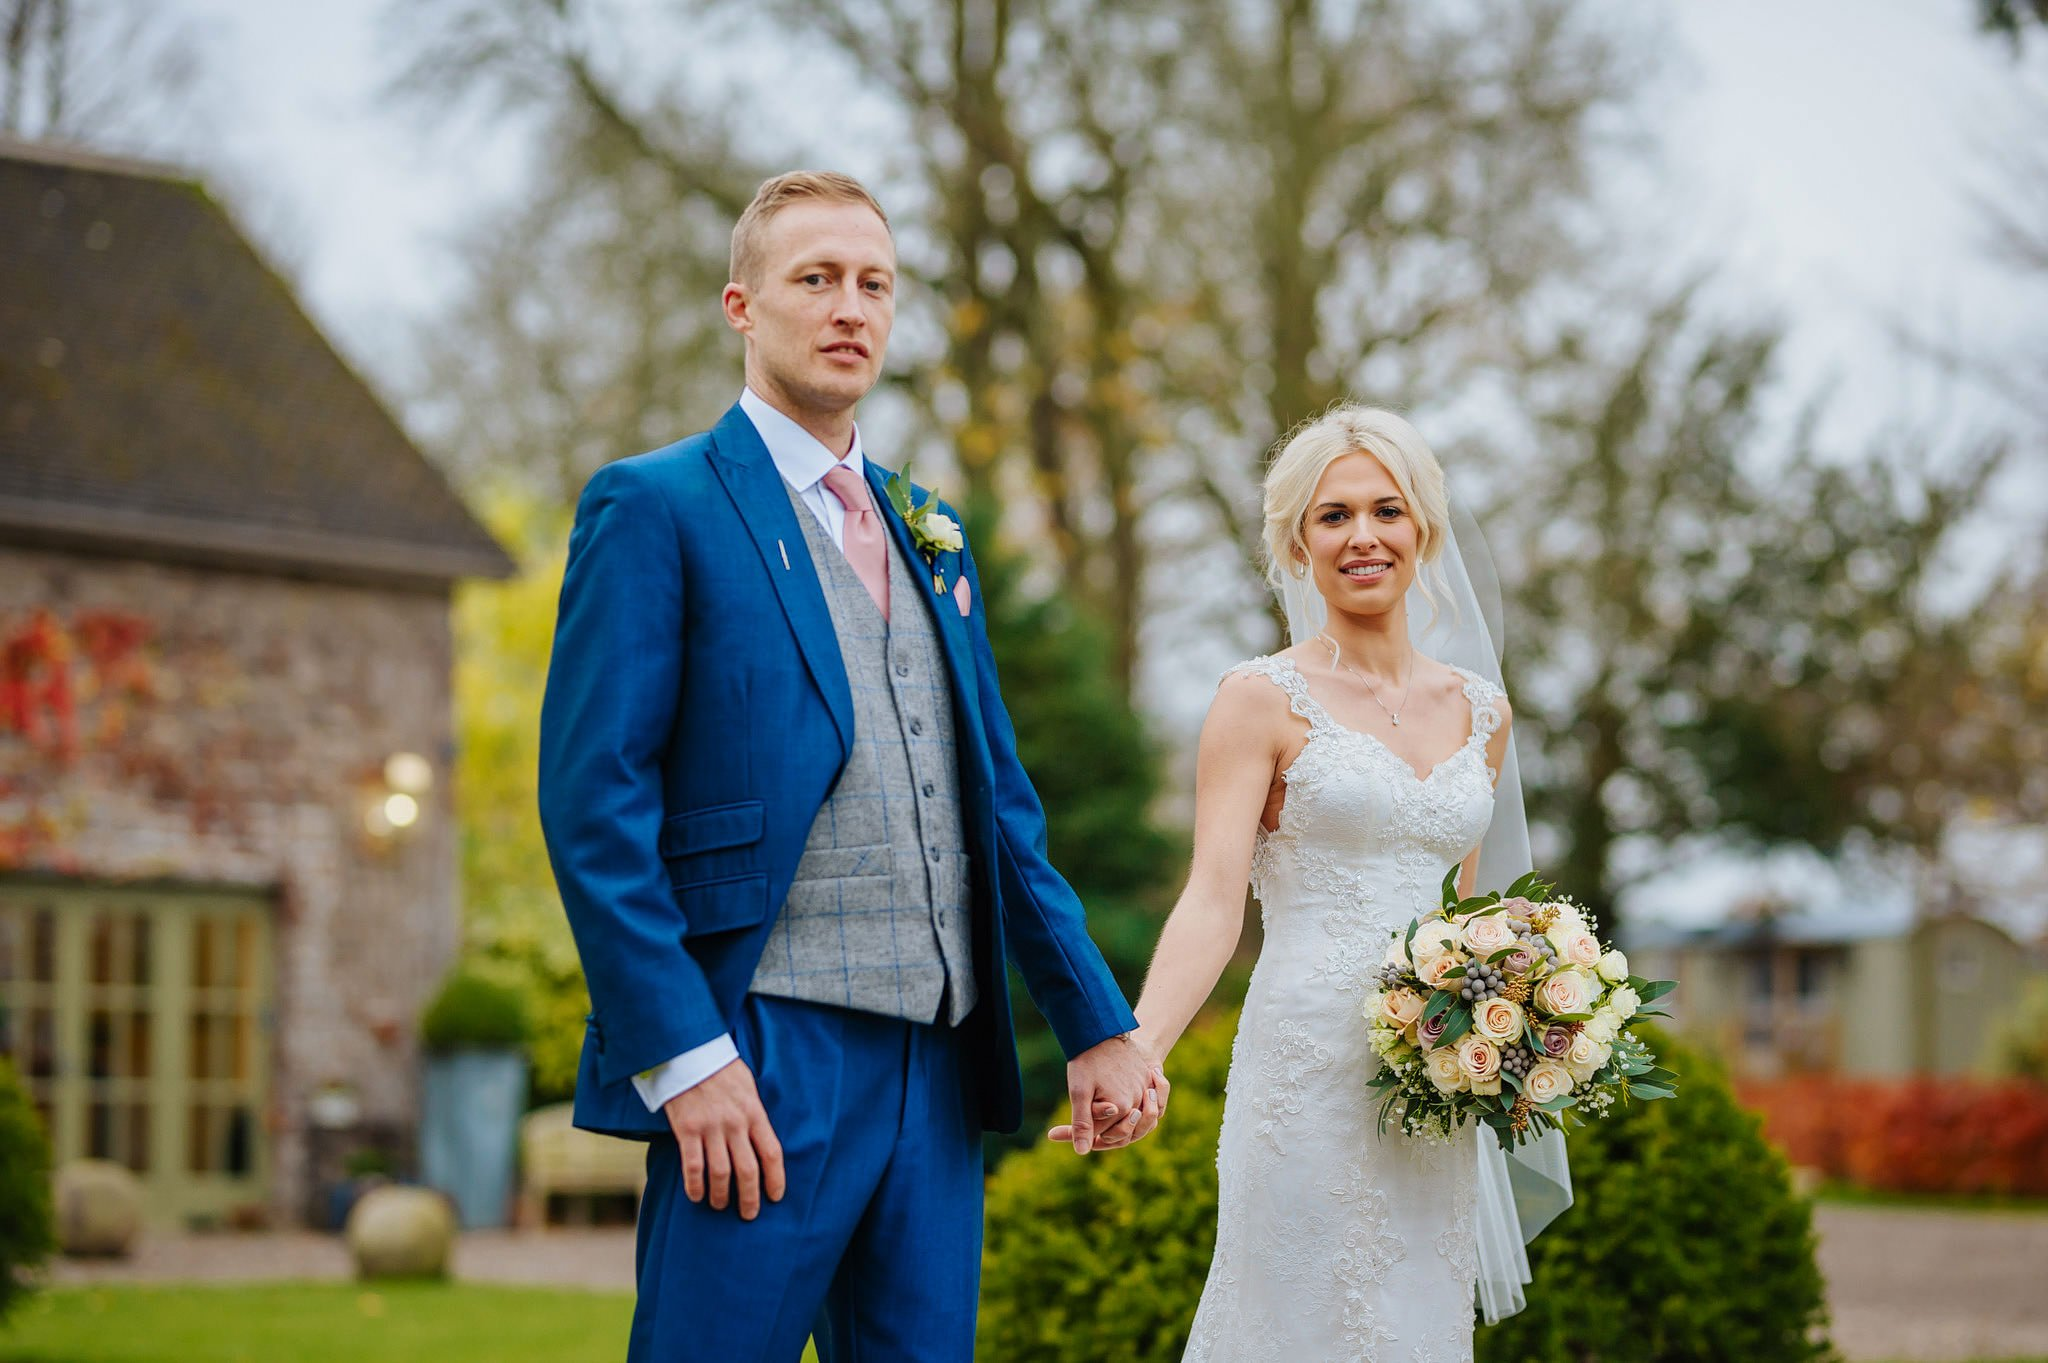 Sigma 85mm F1.4 ART review vs Wedding Photography 19